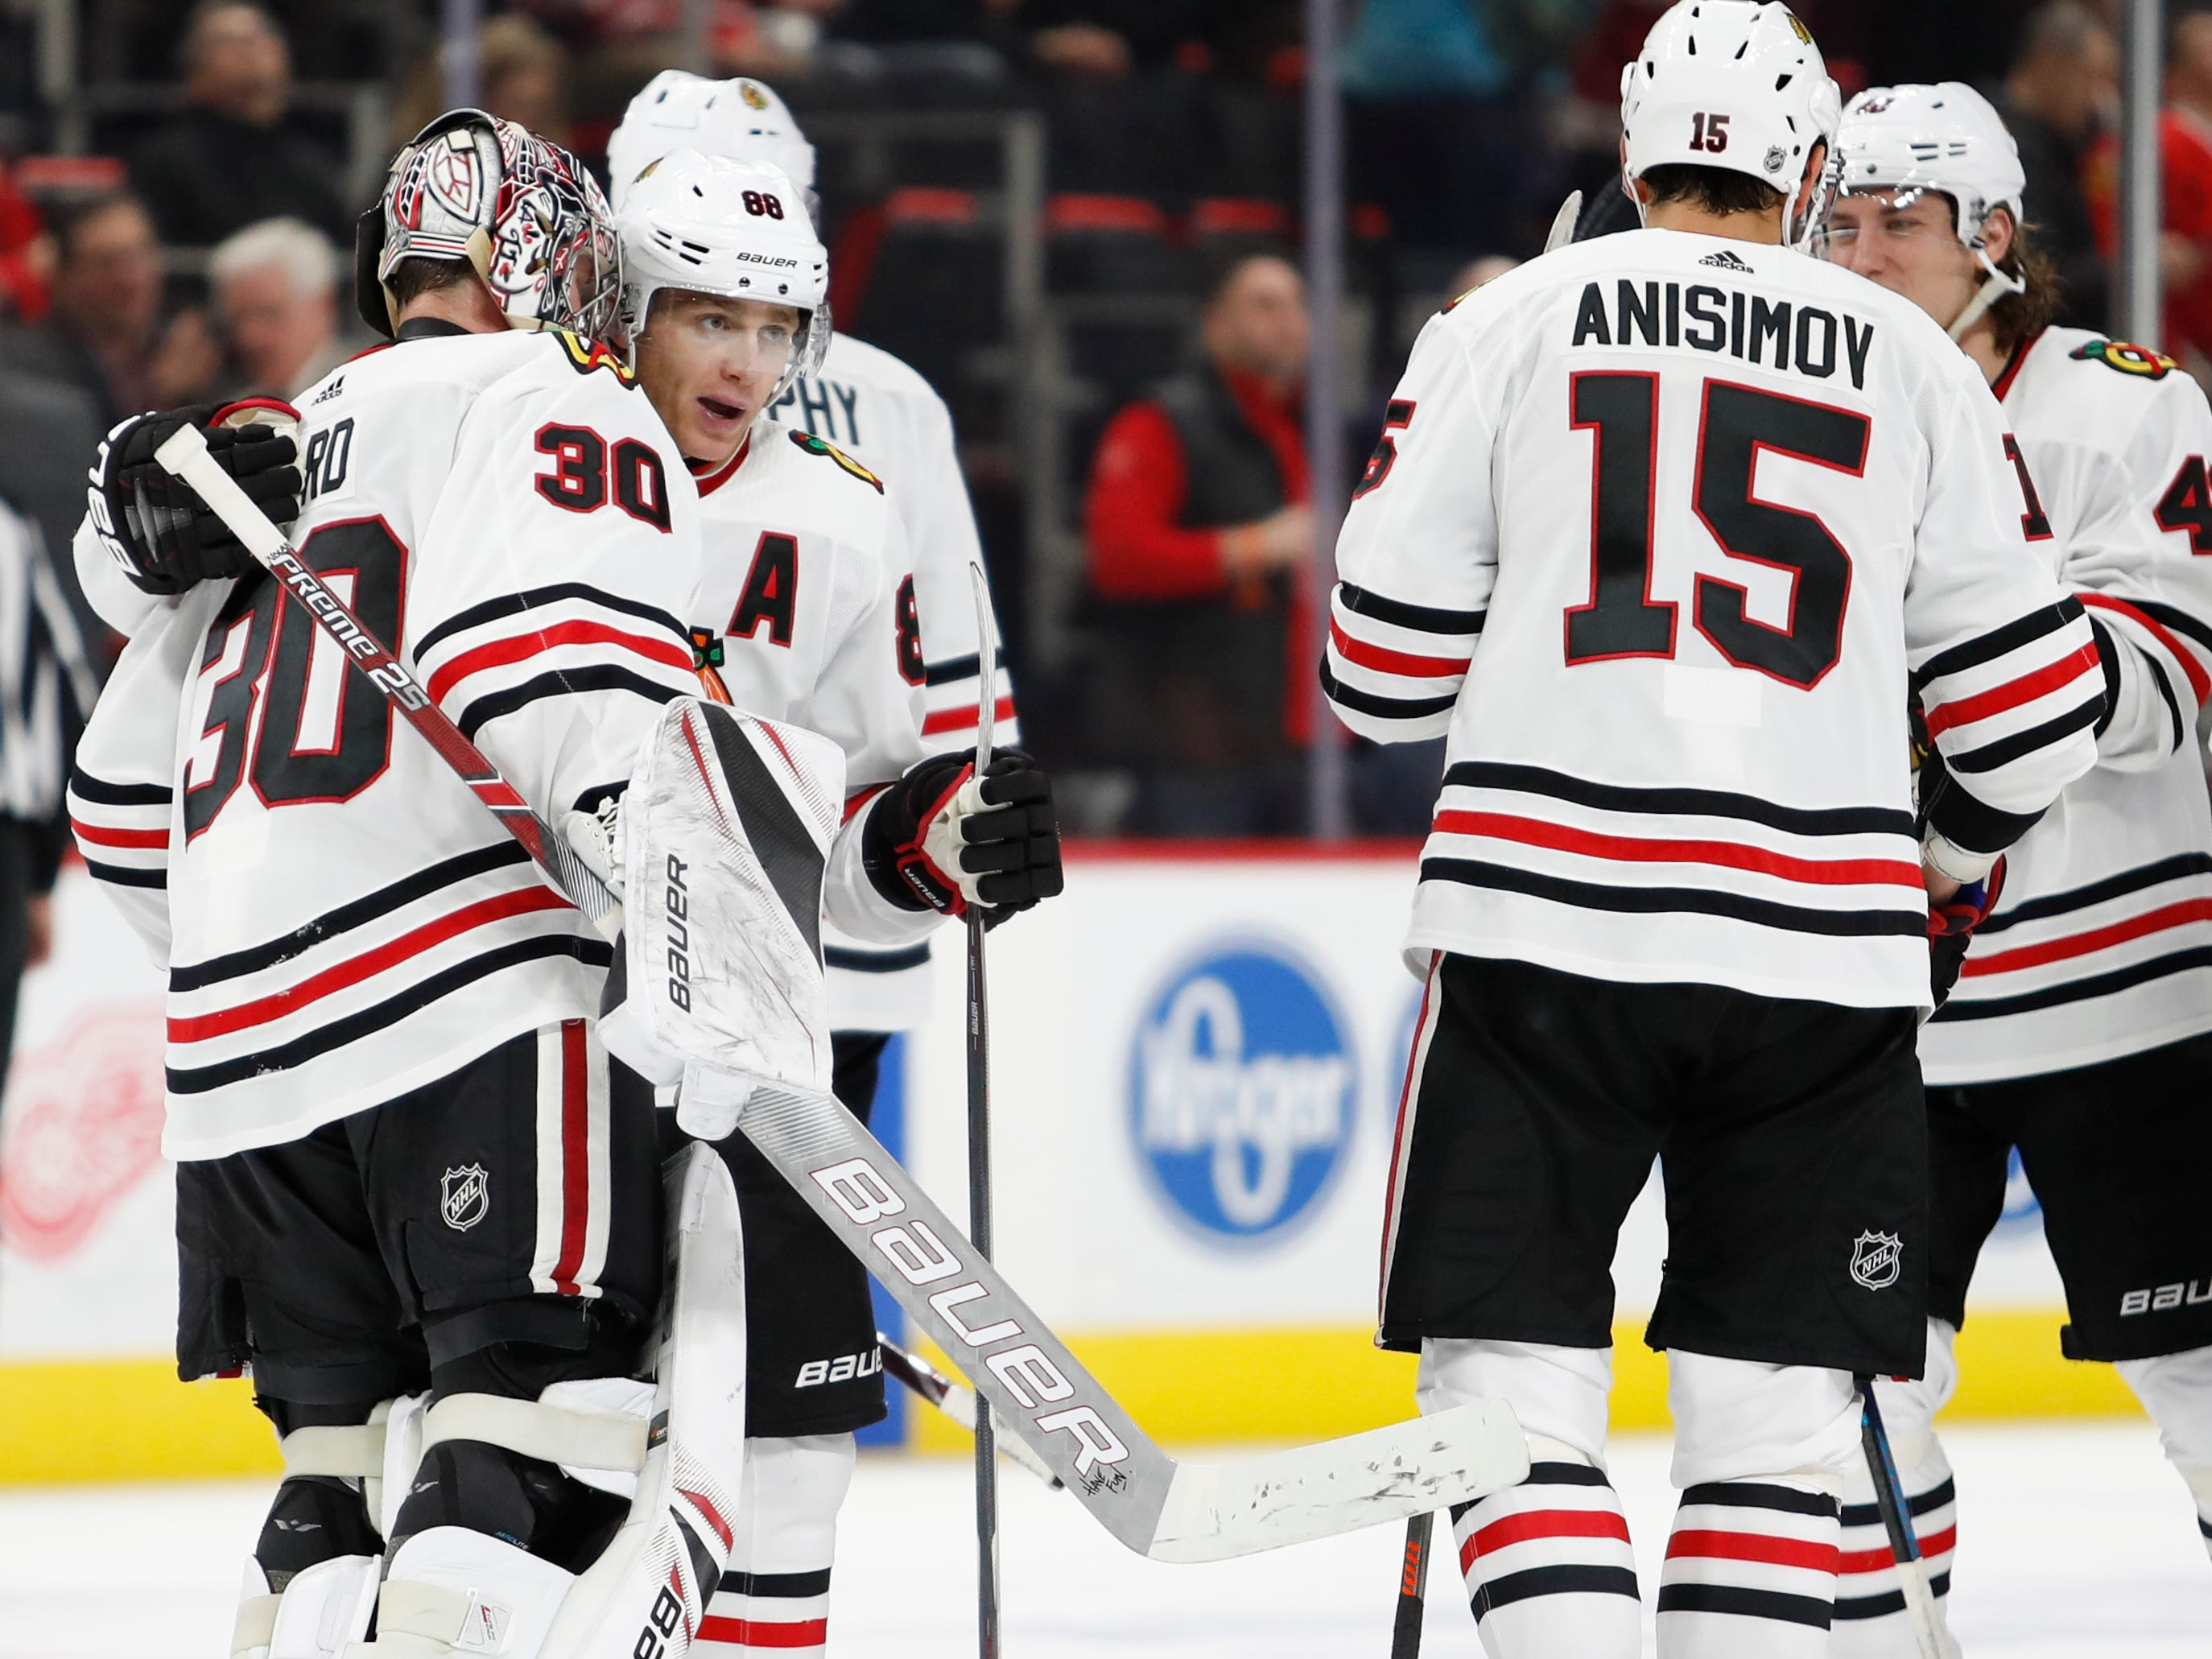 Feb. 20: Chicago Blackhawks winger Patrick Kane (second from left) celebrates his overtime goal in a 5-4 win against the Detroit Red Wings. He scored twice to extend his point streak to 19 games, but his assist streak ended at 17 games.